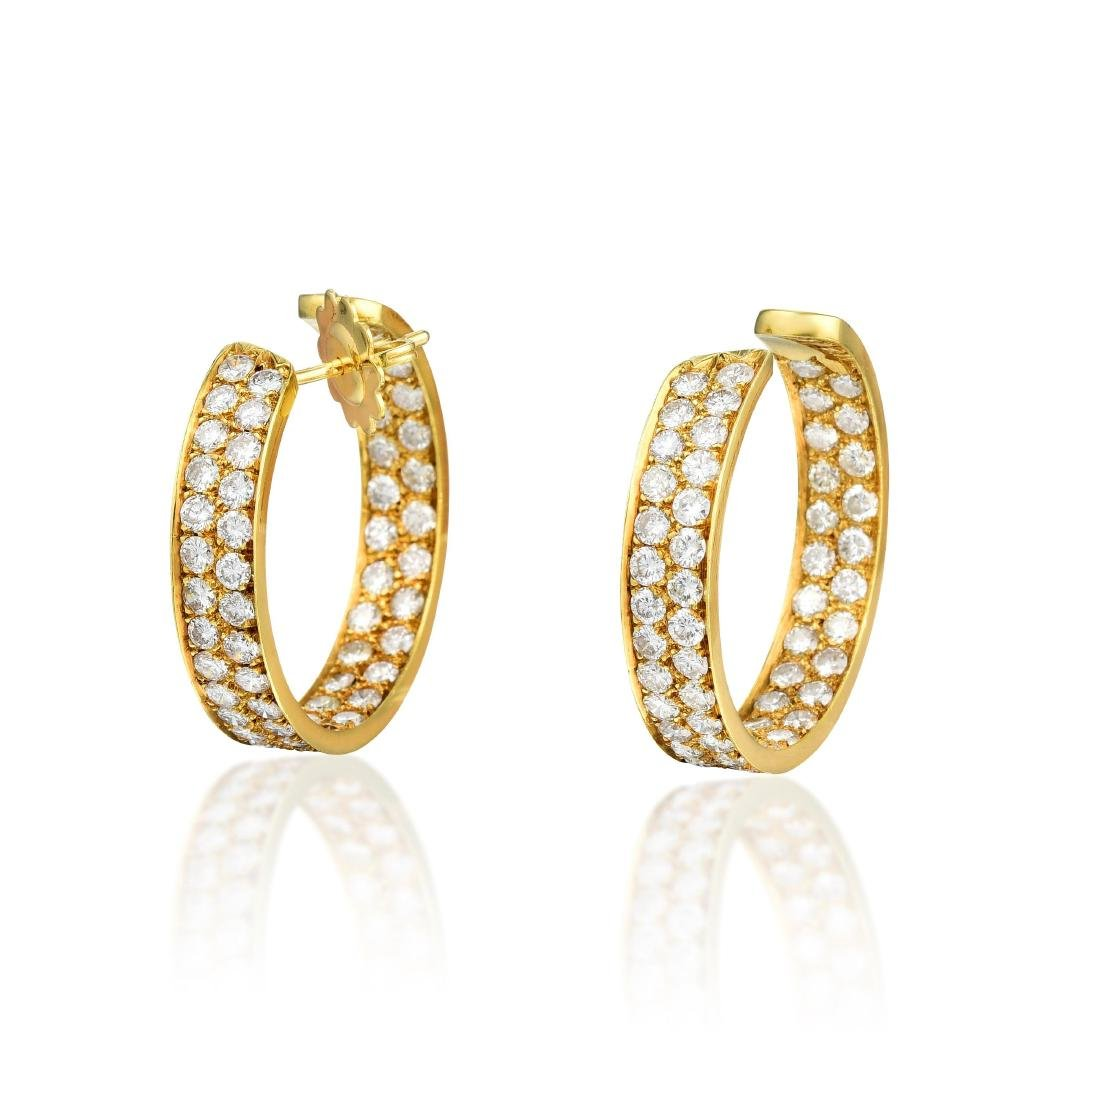 D'Aven 18K Gold Diamond Hoop Earrings